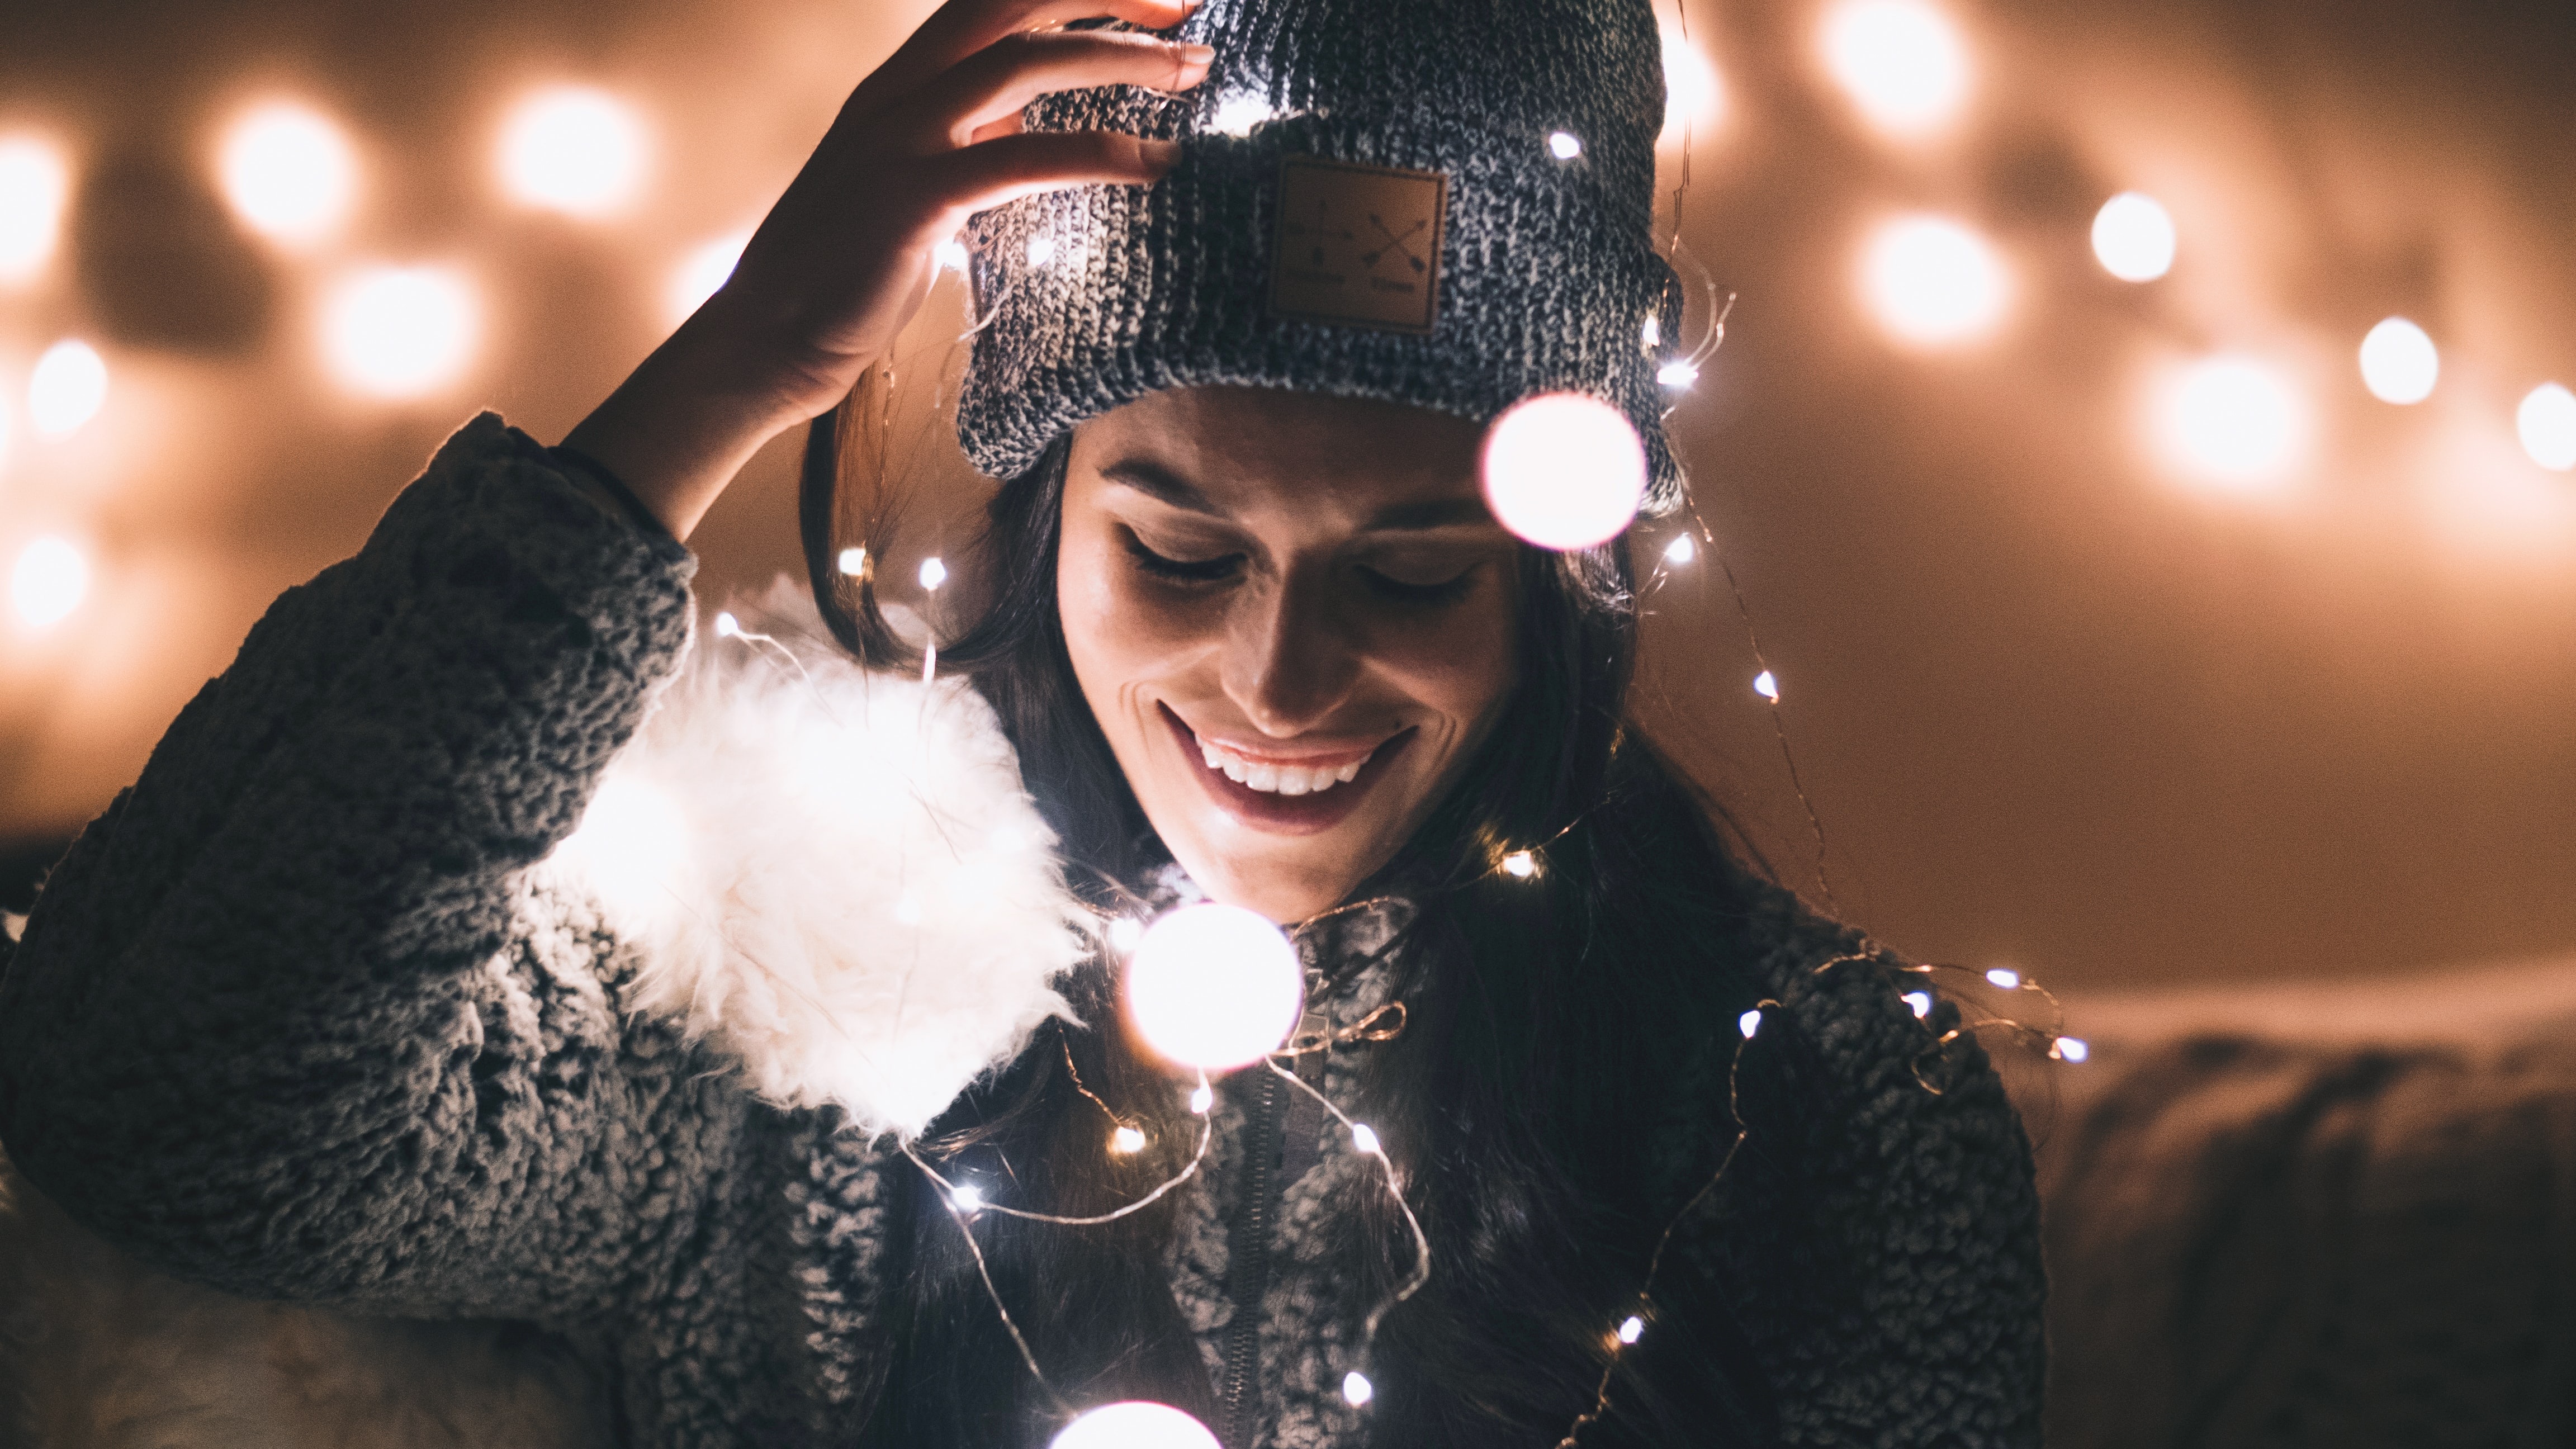 woman in black knit cap holding string lights